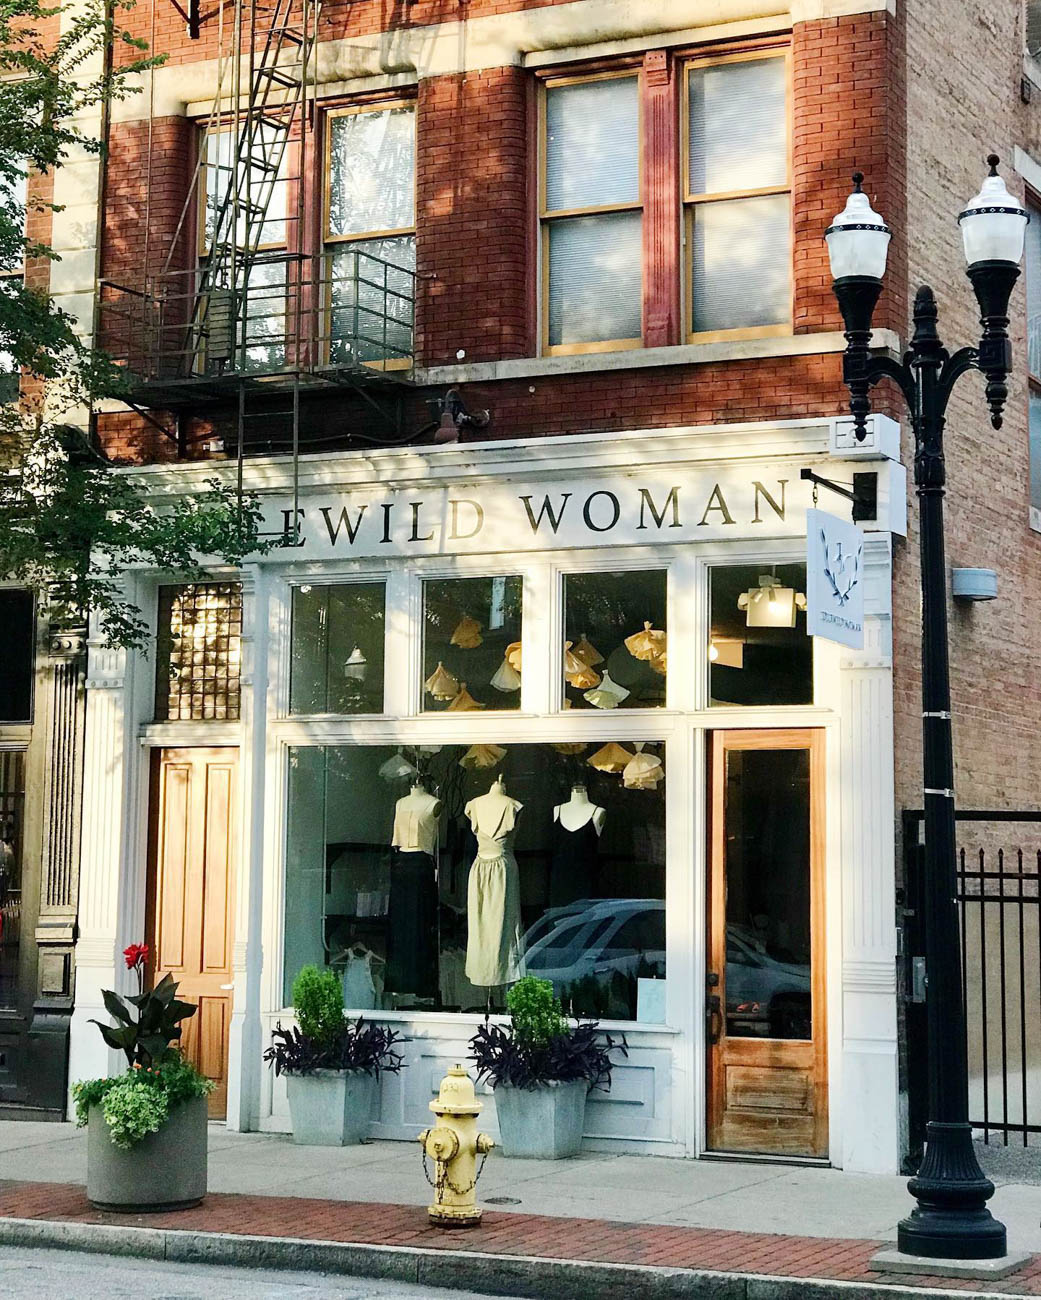 Idlewild Woman (women's clothing) / Idlewild is a boutique that carries high quality and ethically made garments that focus on sustainable materials and processes. / ADDRESS: 1230 Vine Street (Over-the-Rhine) / WEBSITE: idlewildwoman.com / Image courtesy of Idlewild Woman // Published: 3.19.20